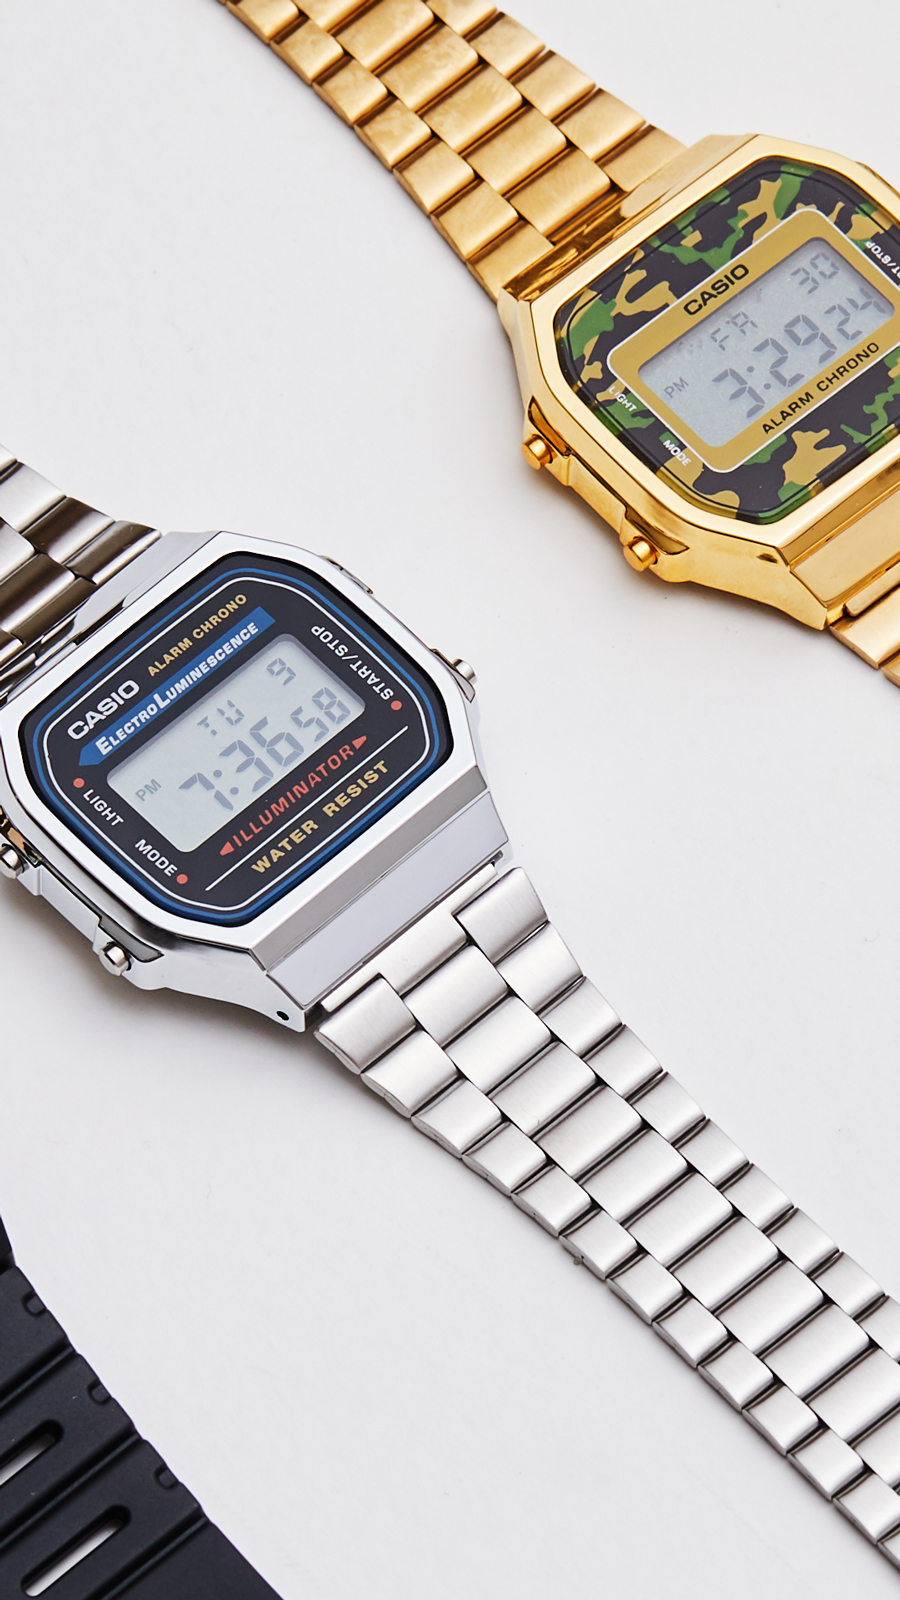 jefflevingston-casio-product.jpg